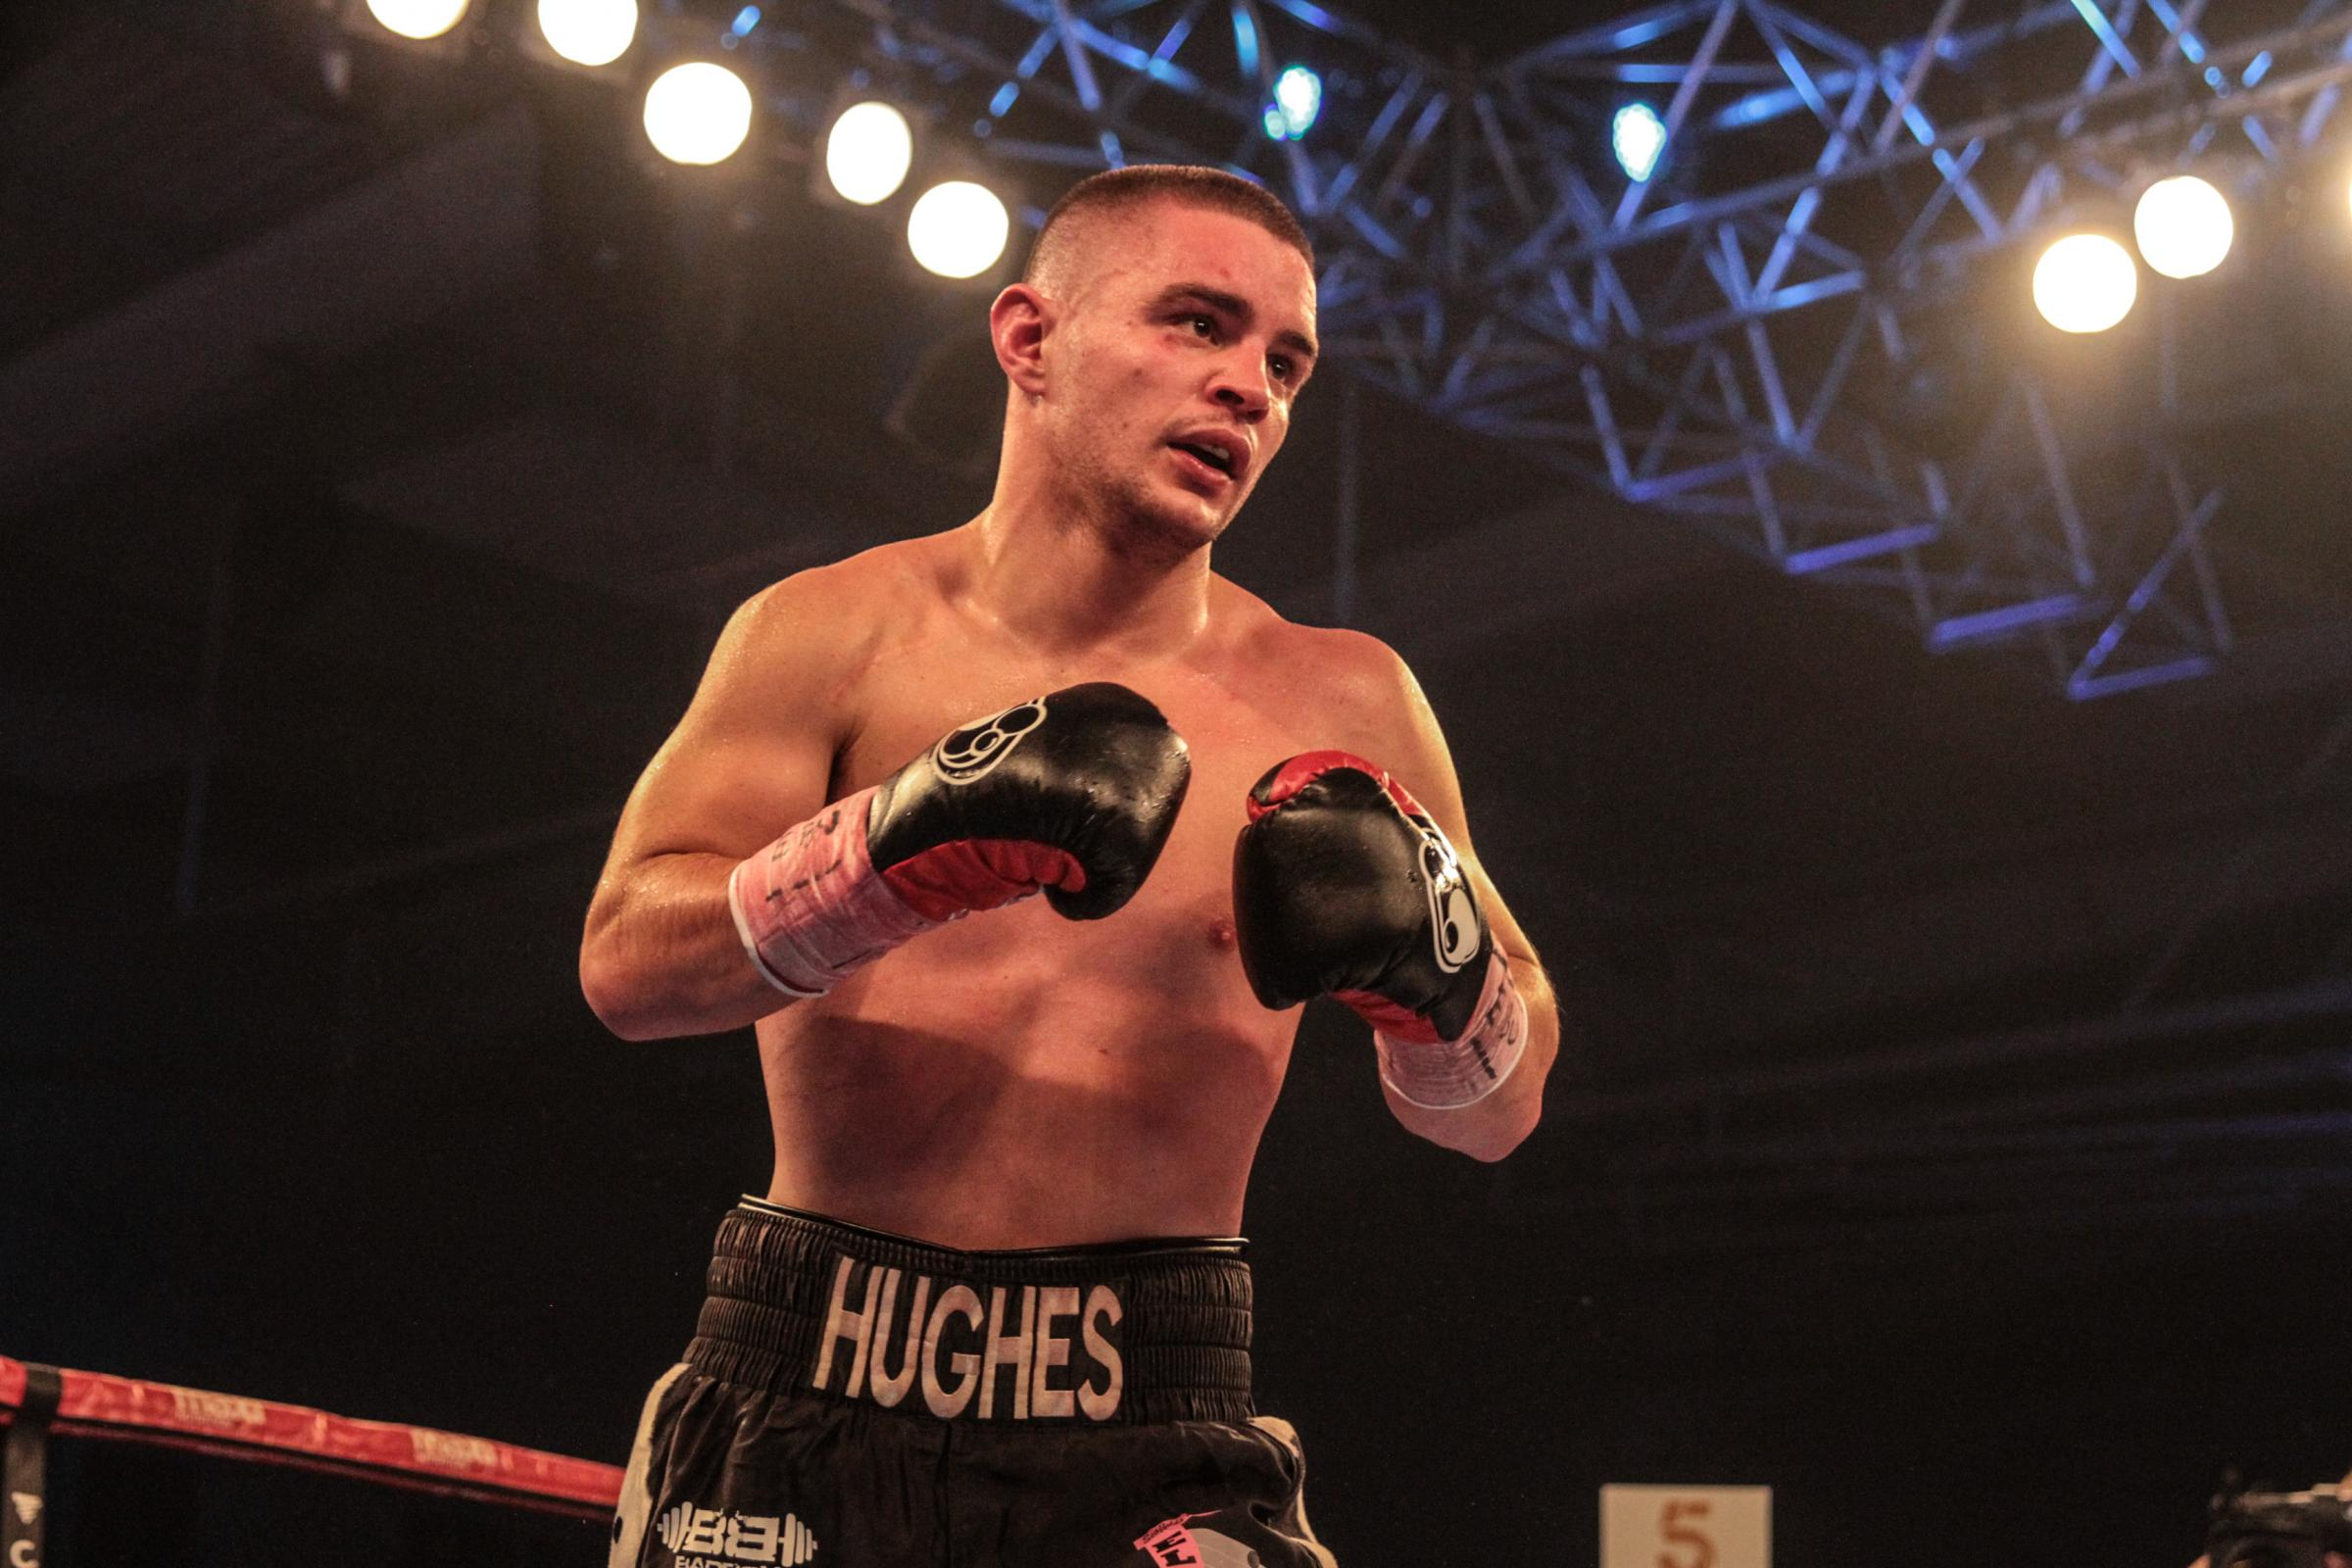 BOXING: Friday fight night alright for Joe Hughes despite bizarre end to bout